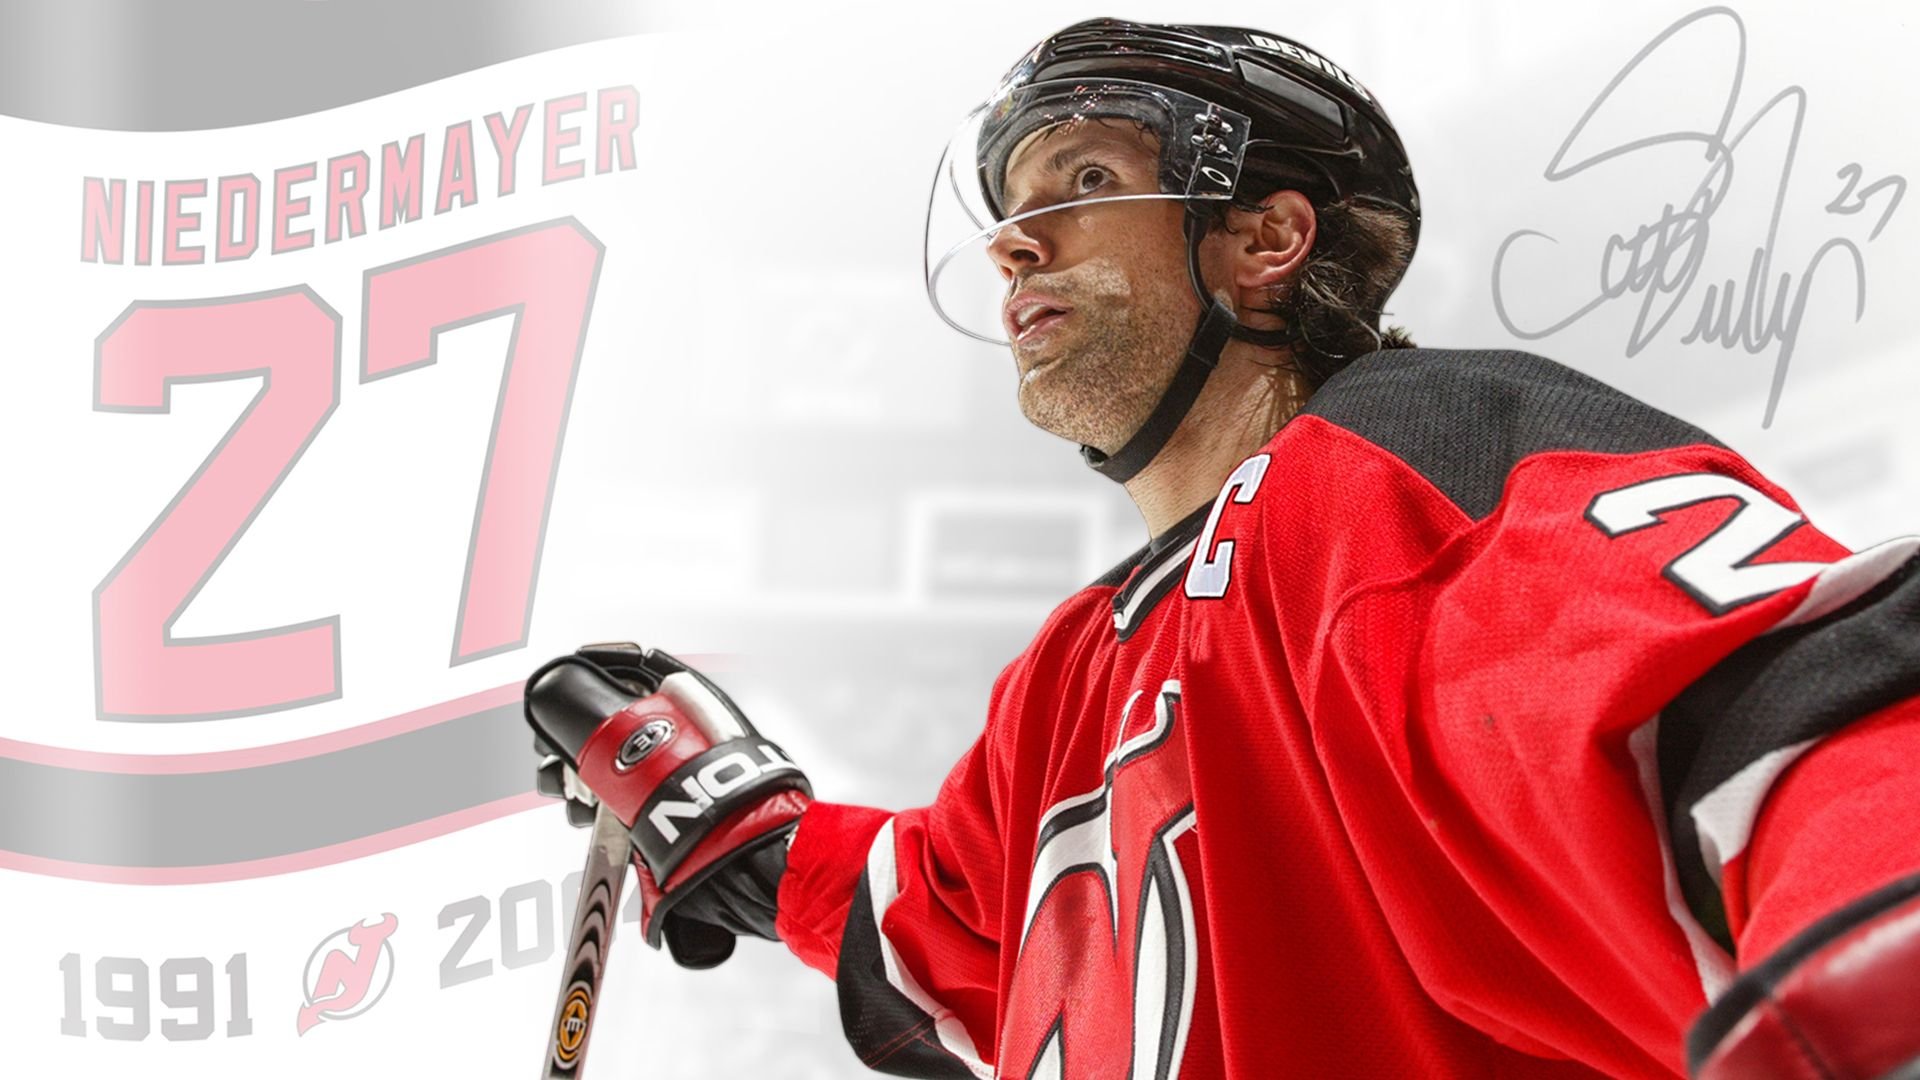 New Jersey Devils Wallpapers New Jersey Devils Hockey Players